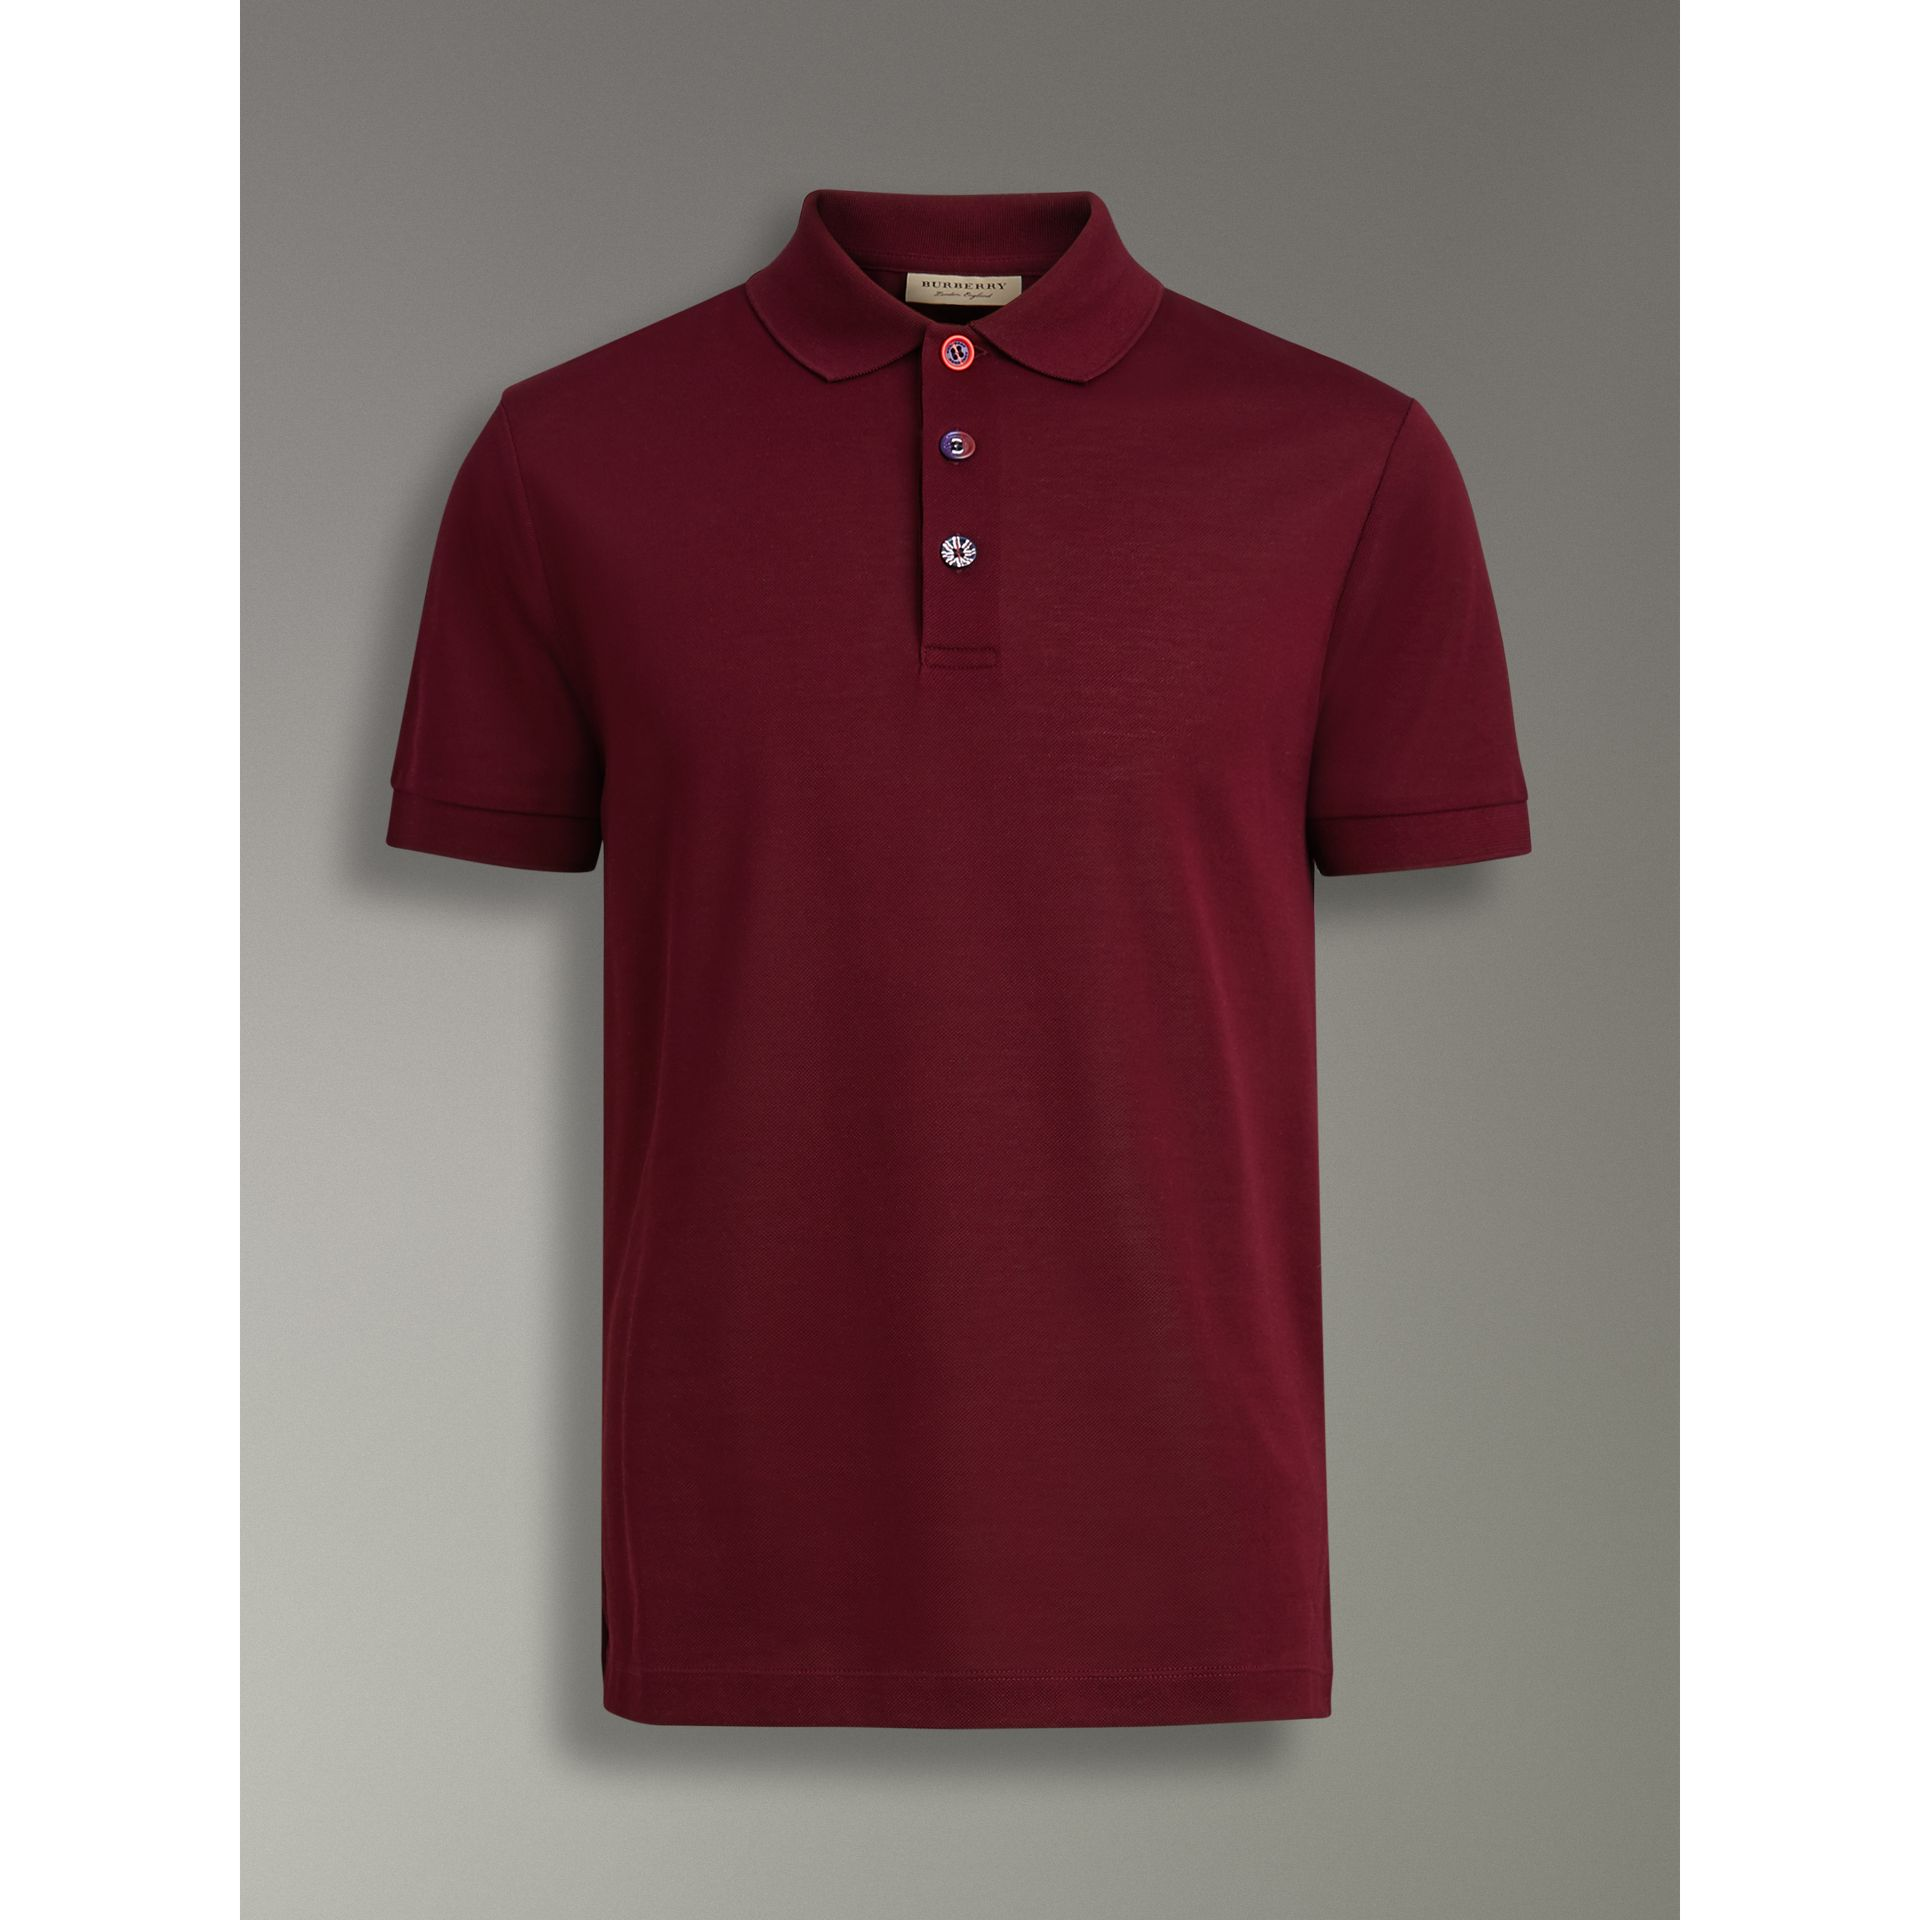 Painted Button Cotton Piqué Polo Shirt in Burgundy Red - Men | Burberry Australia - gallery image 3